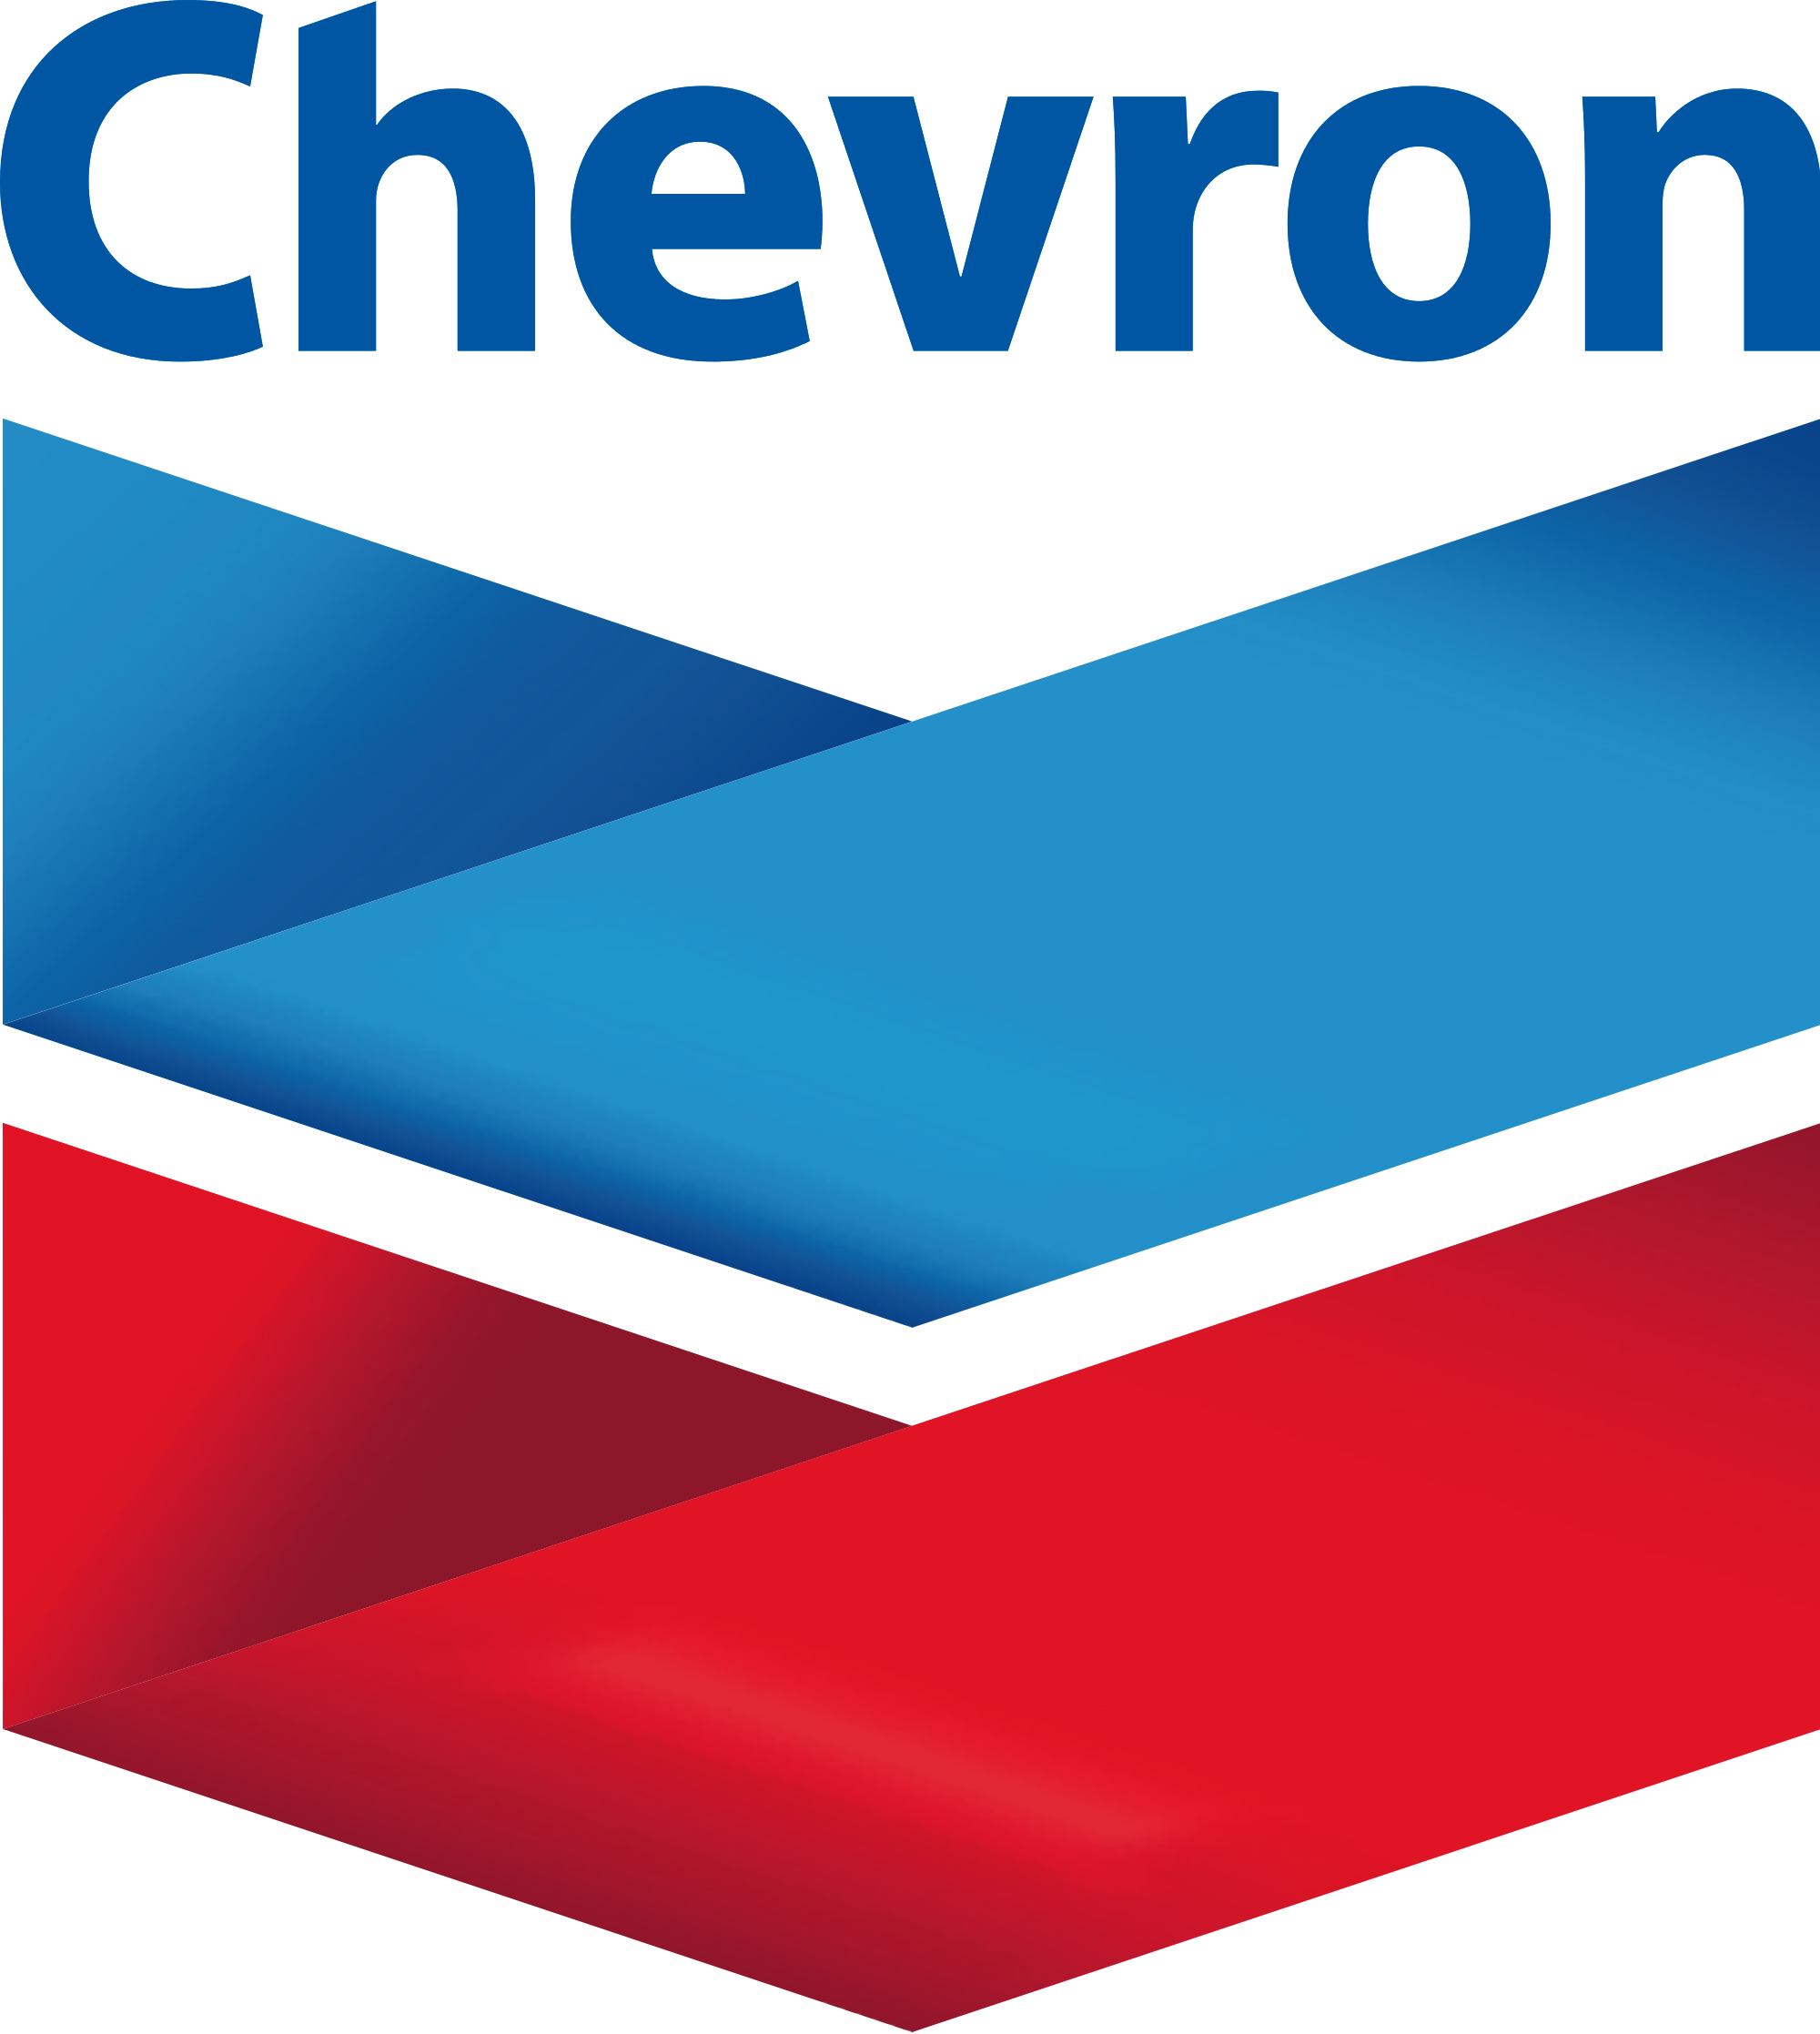 Chevron Technology Ventures